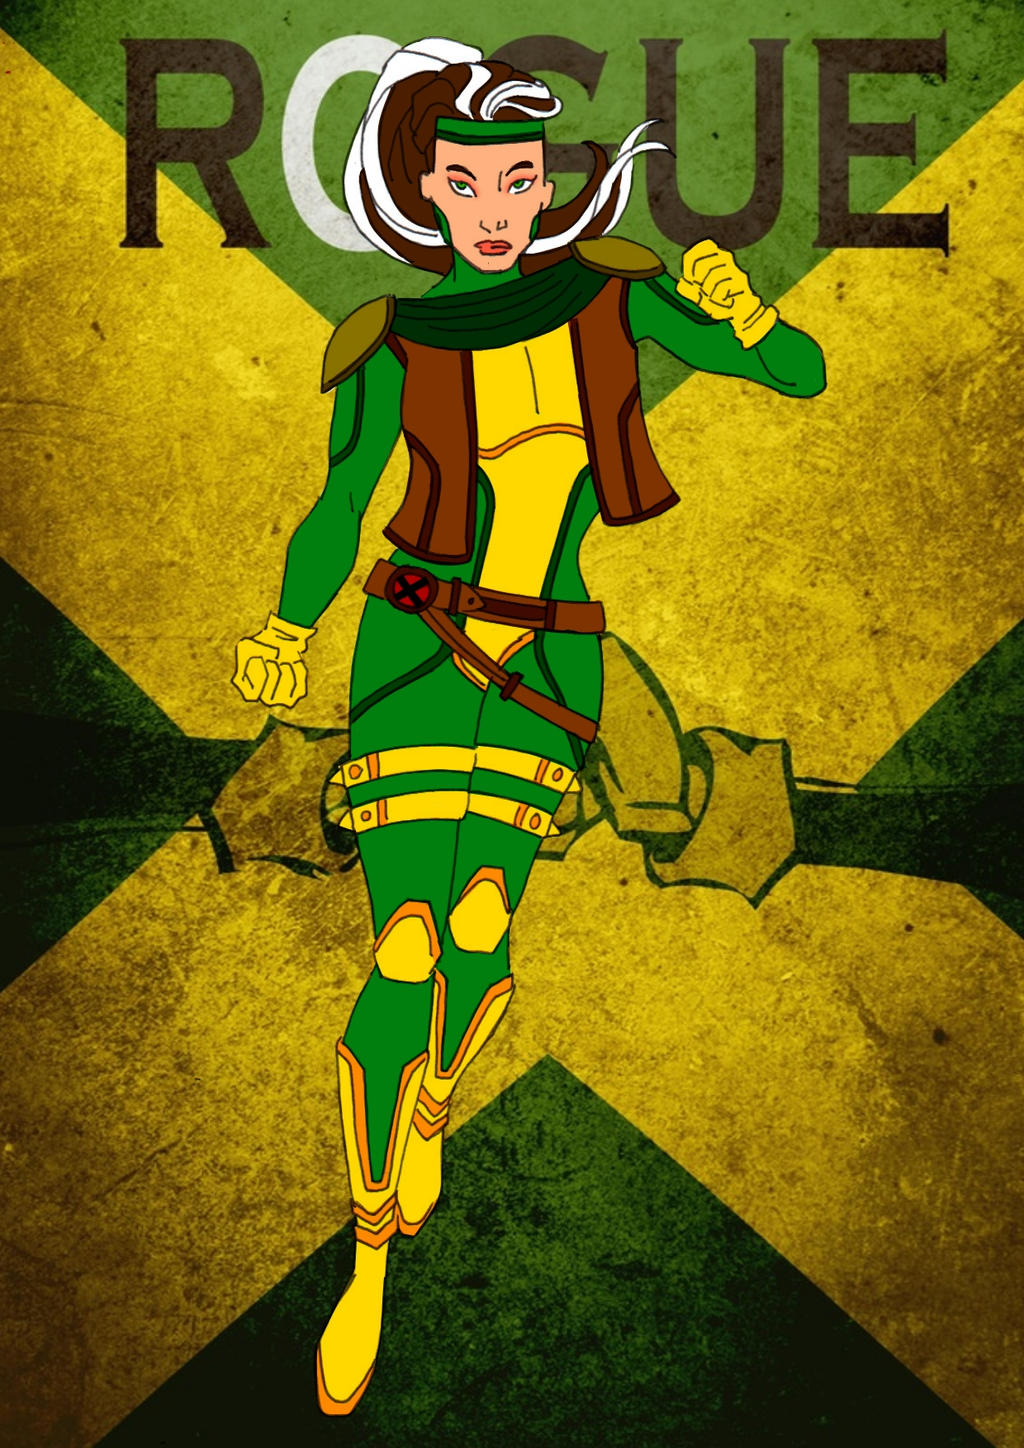 Rogue Redesign!! by Comicbookguy54321